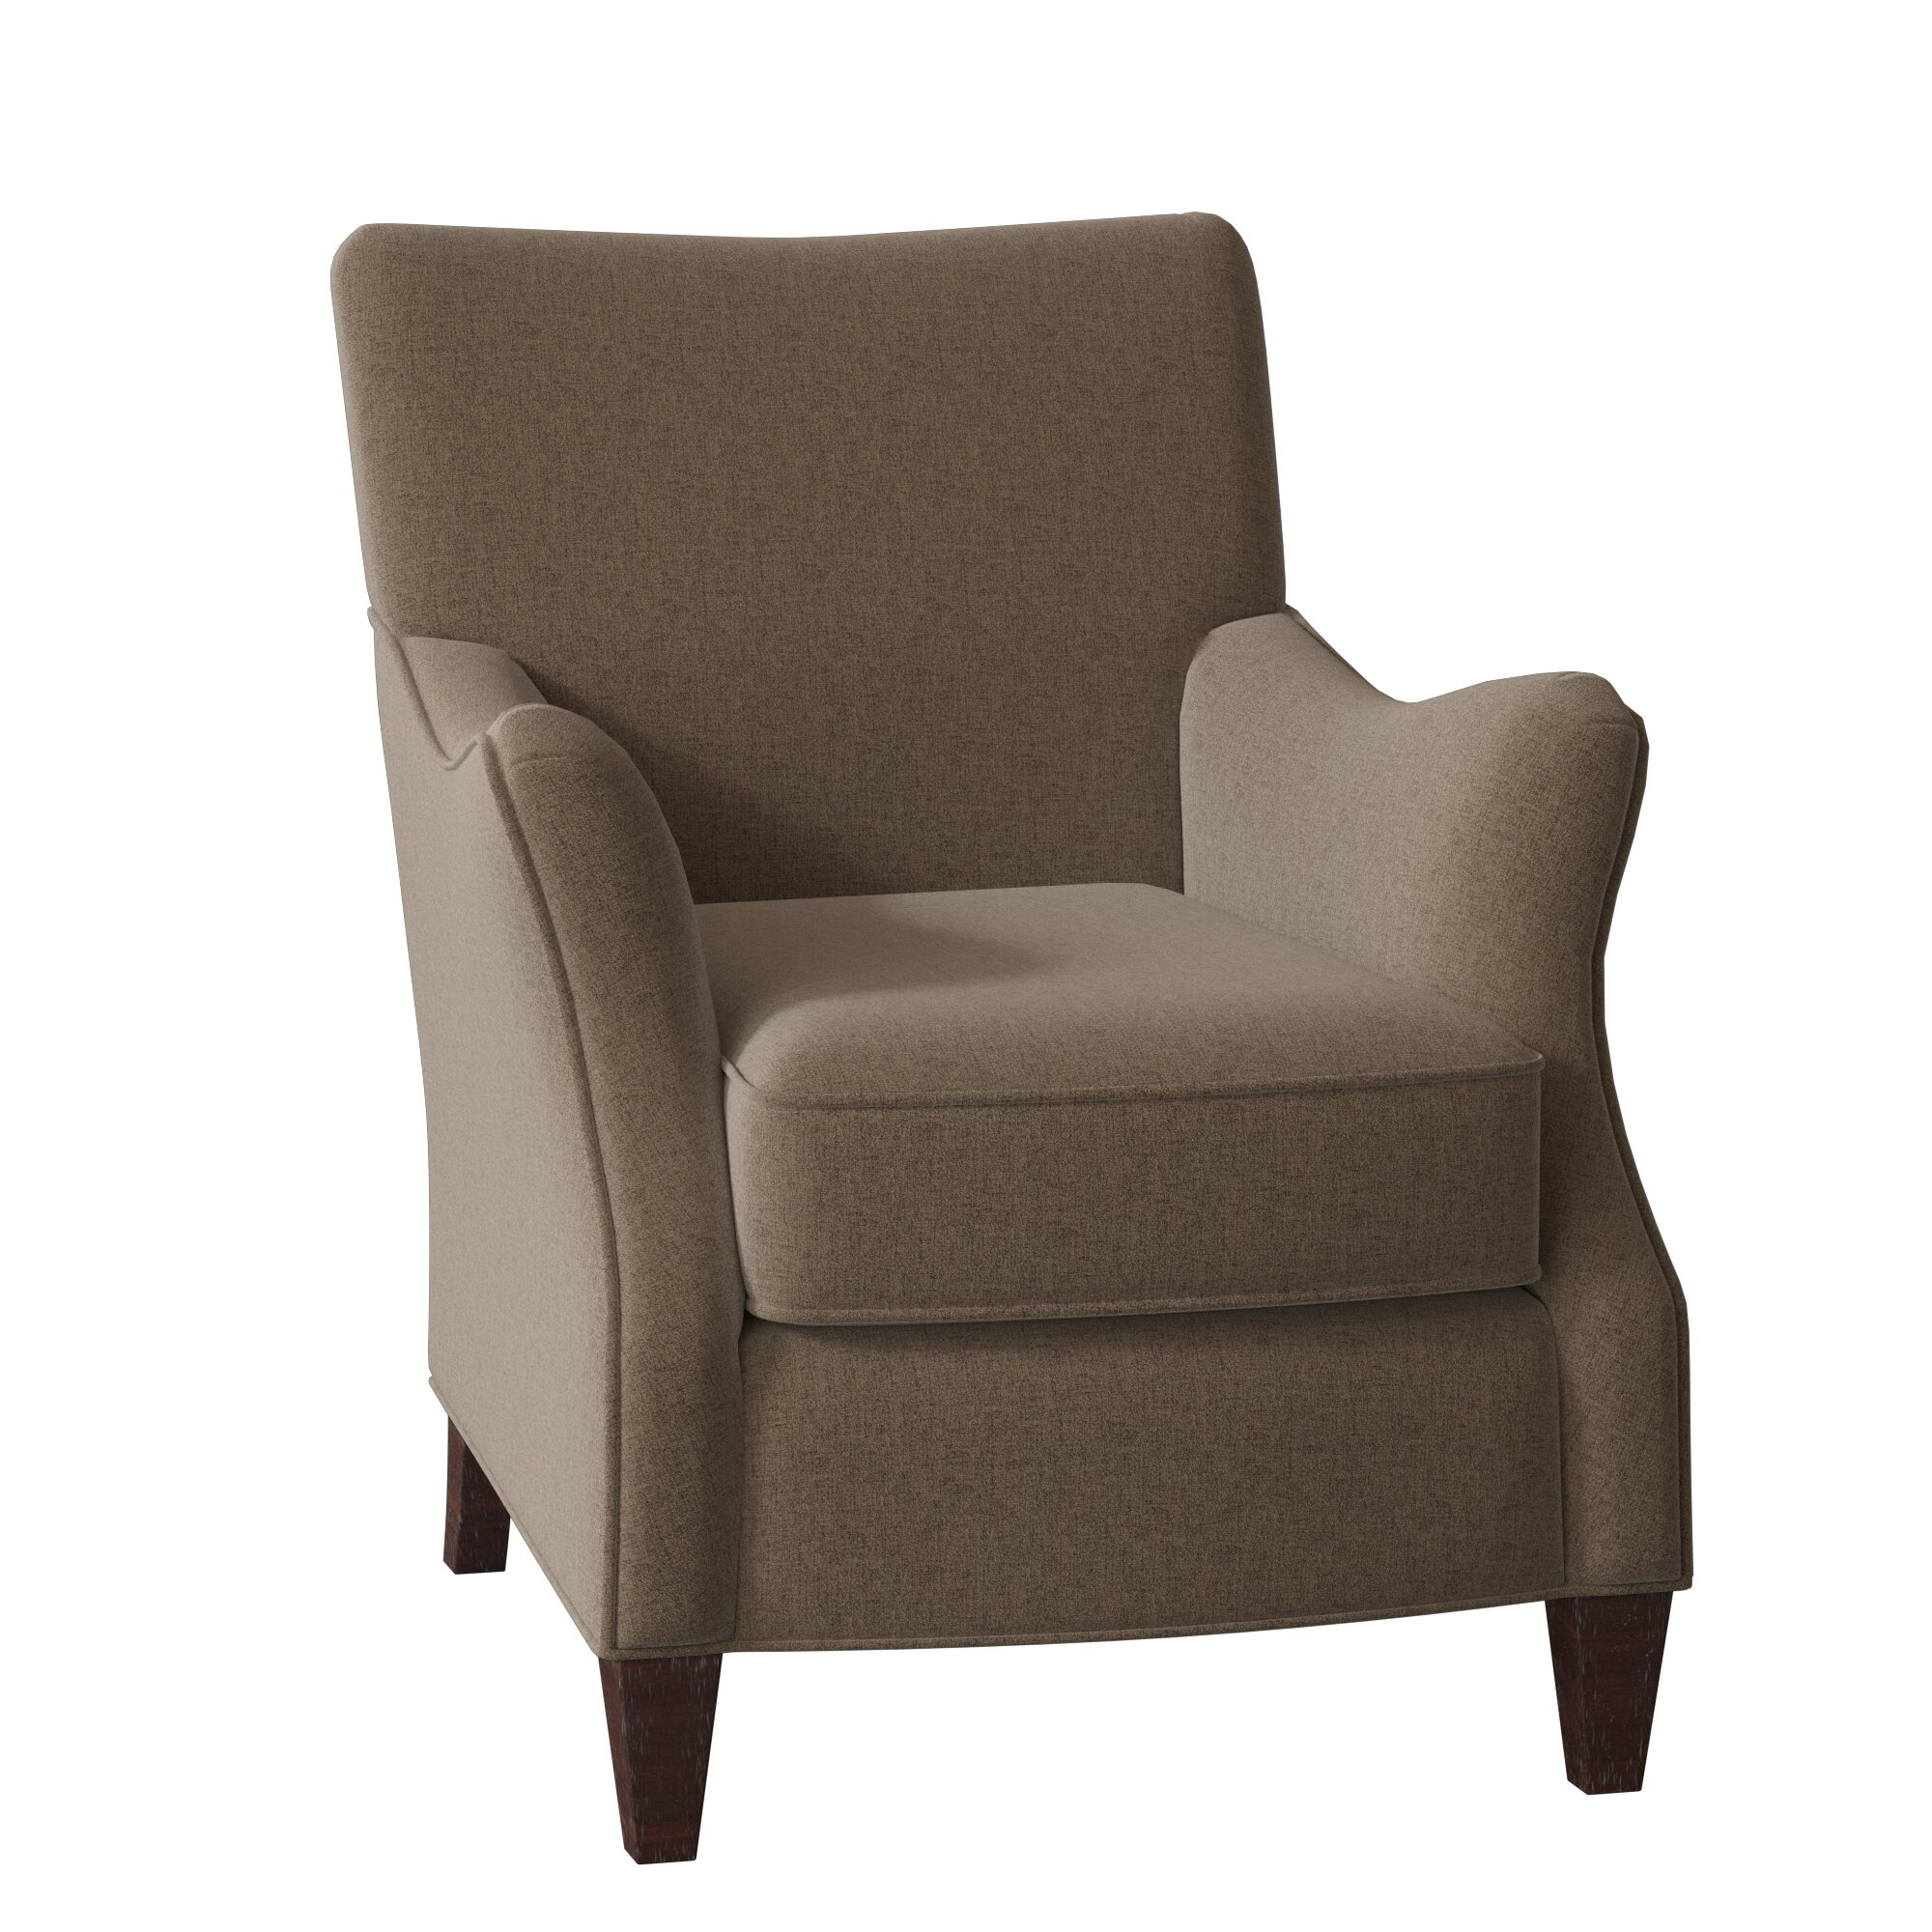 Fairfield Chair Leland Armchair Perigold